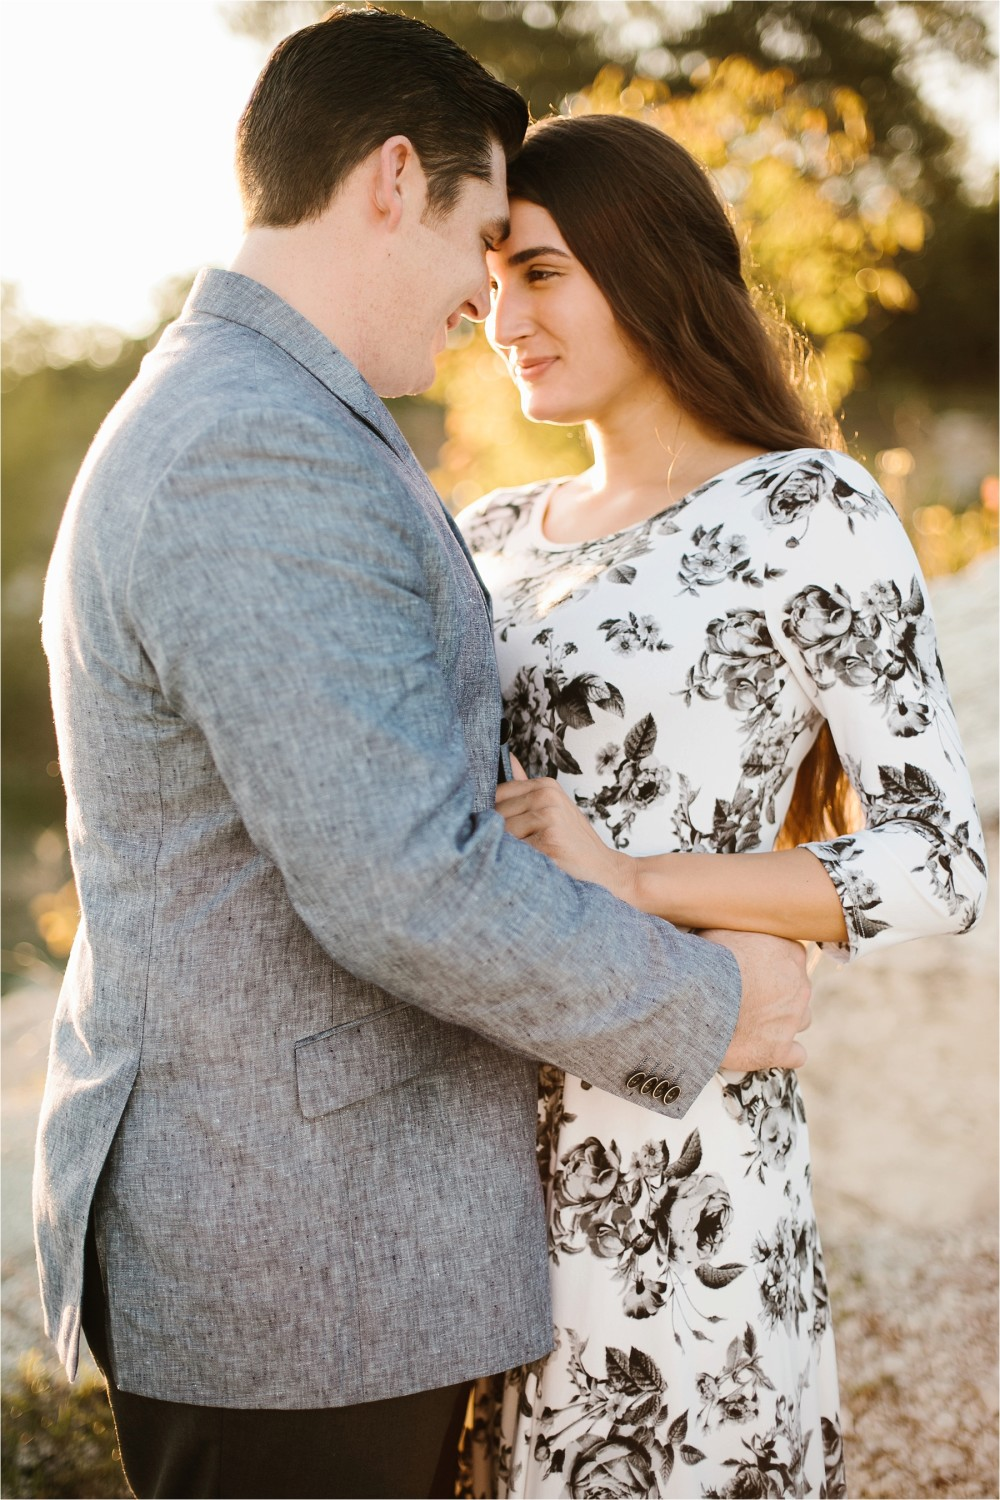 an-intimate-sunrise-session-by-north-texas-wedding-photographer-rachel-meagan-photography-_-27